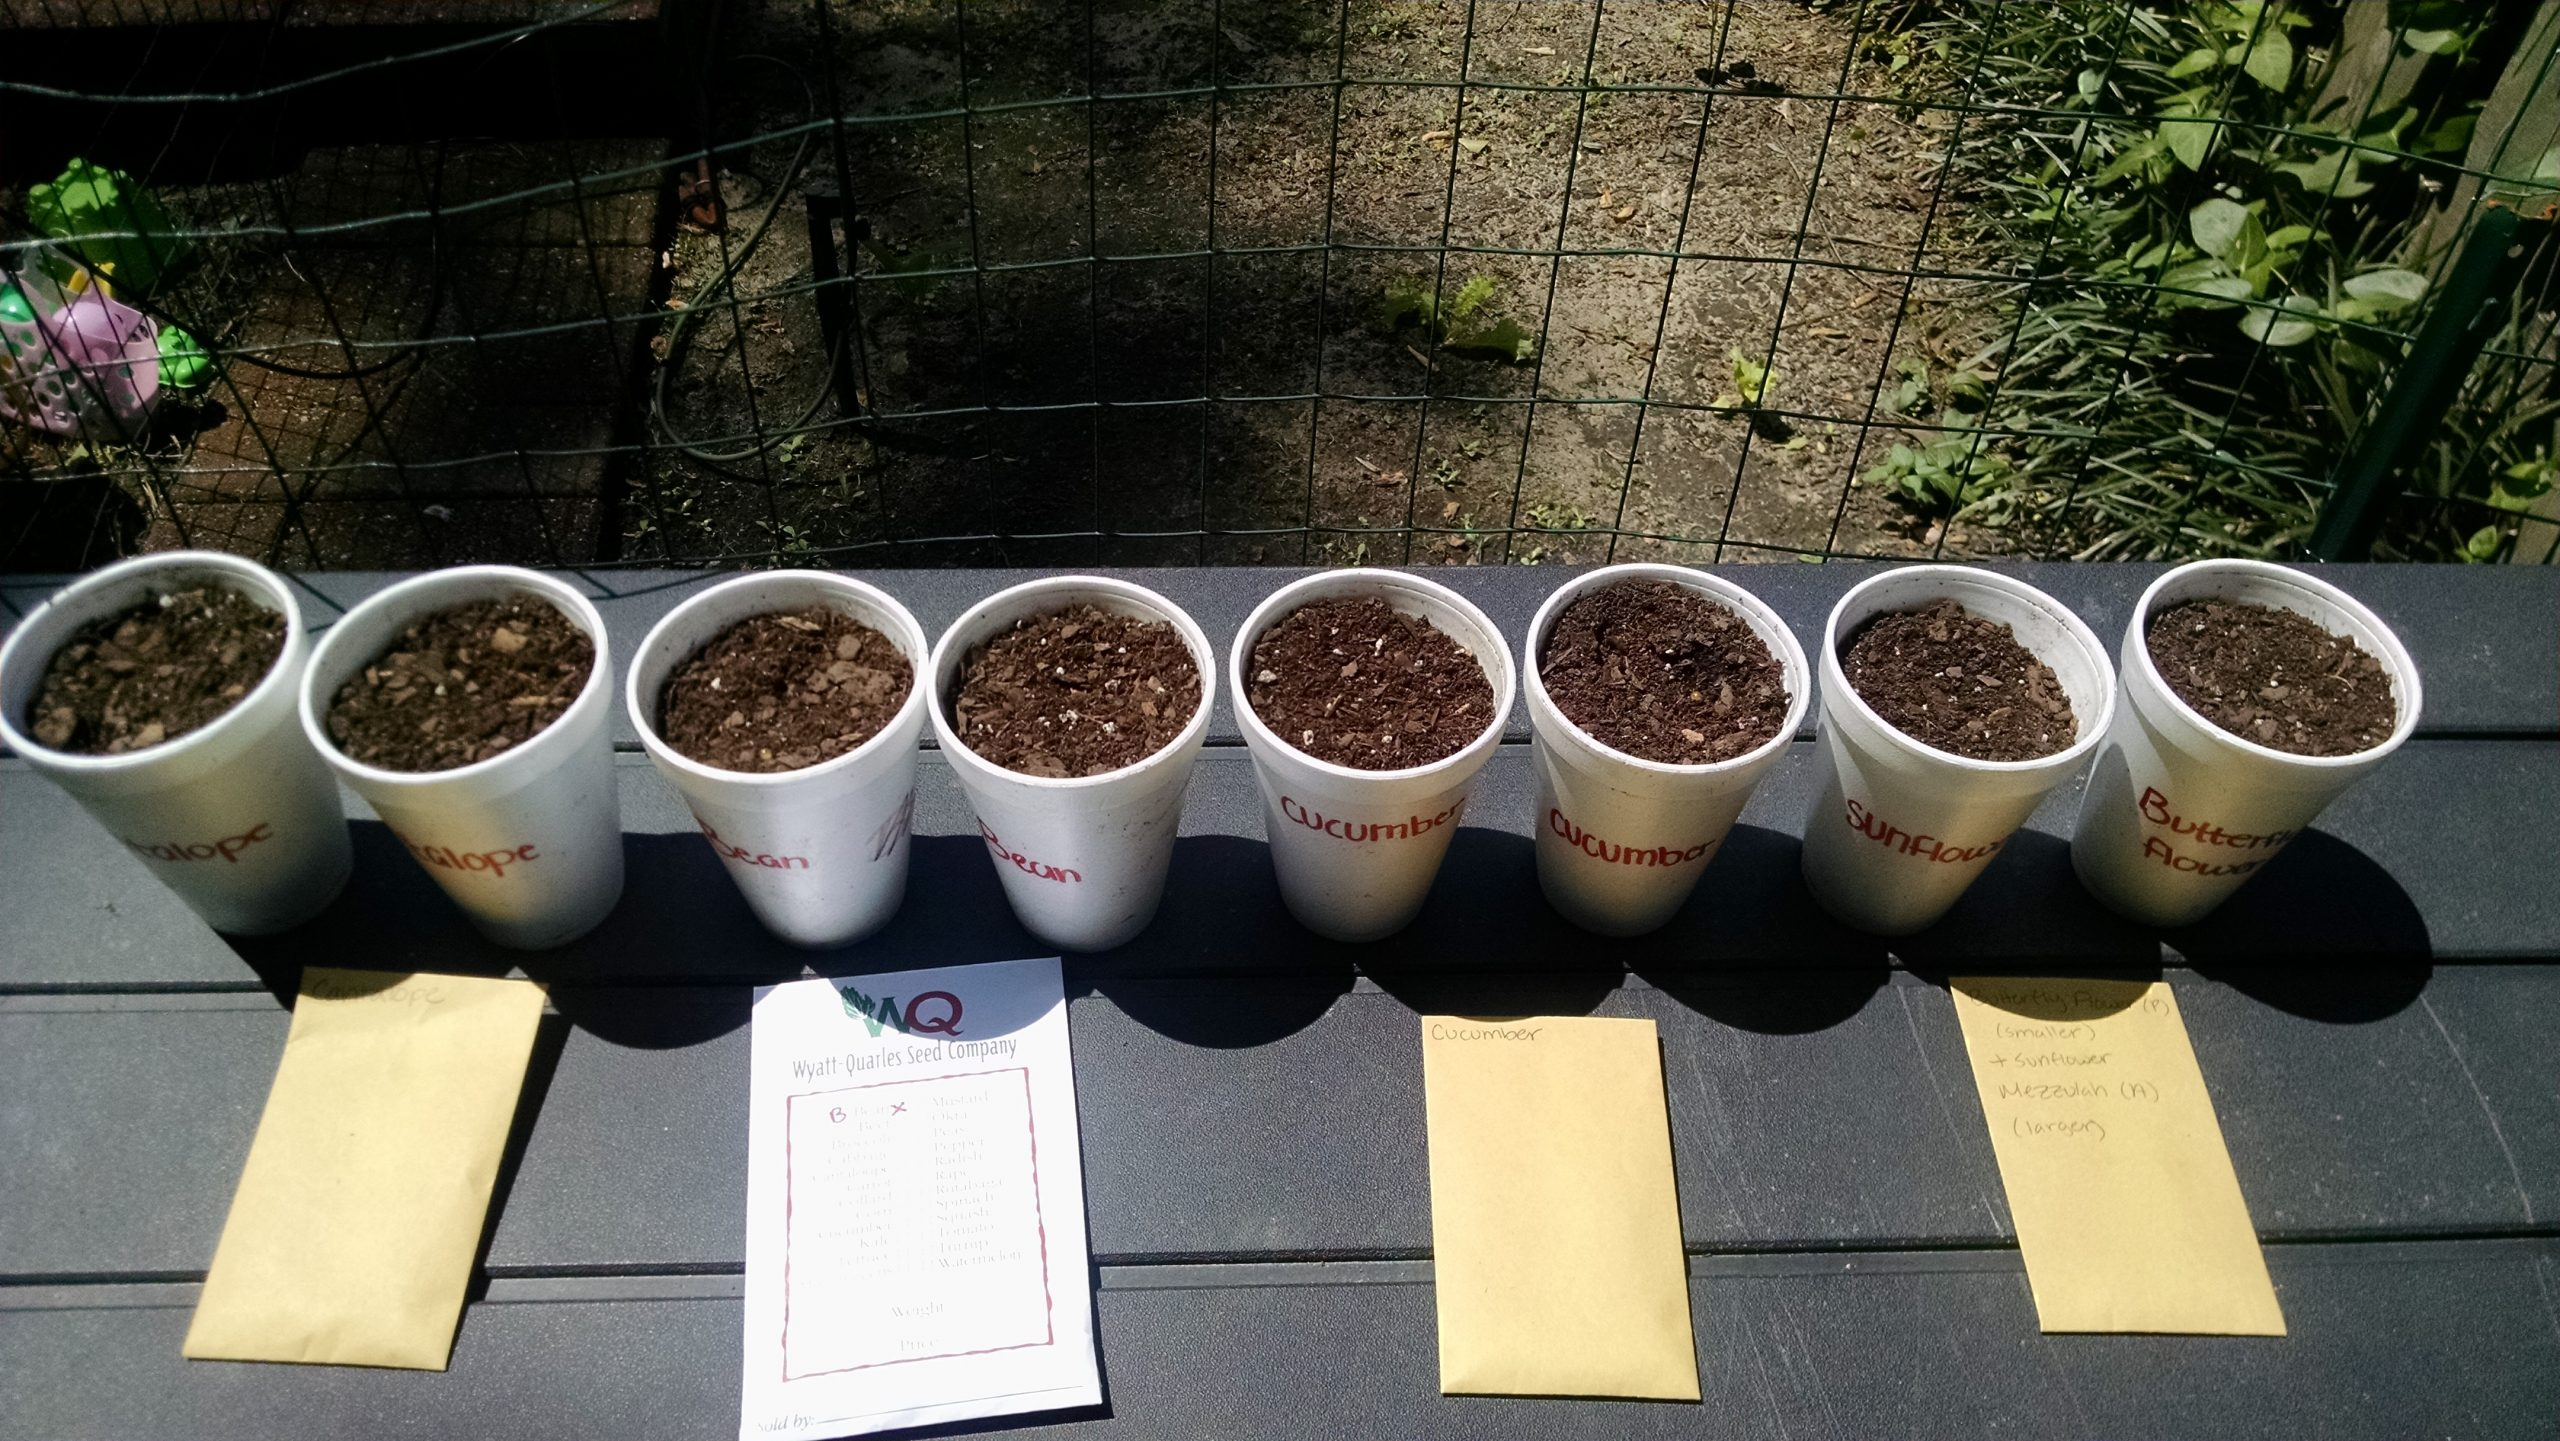 A line of Cups with soil and seeds